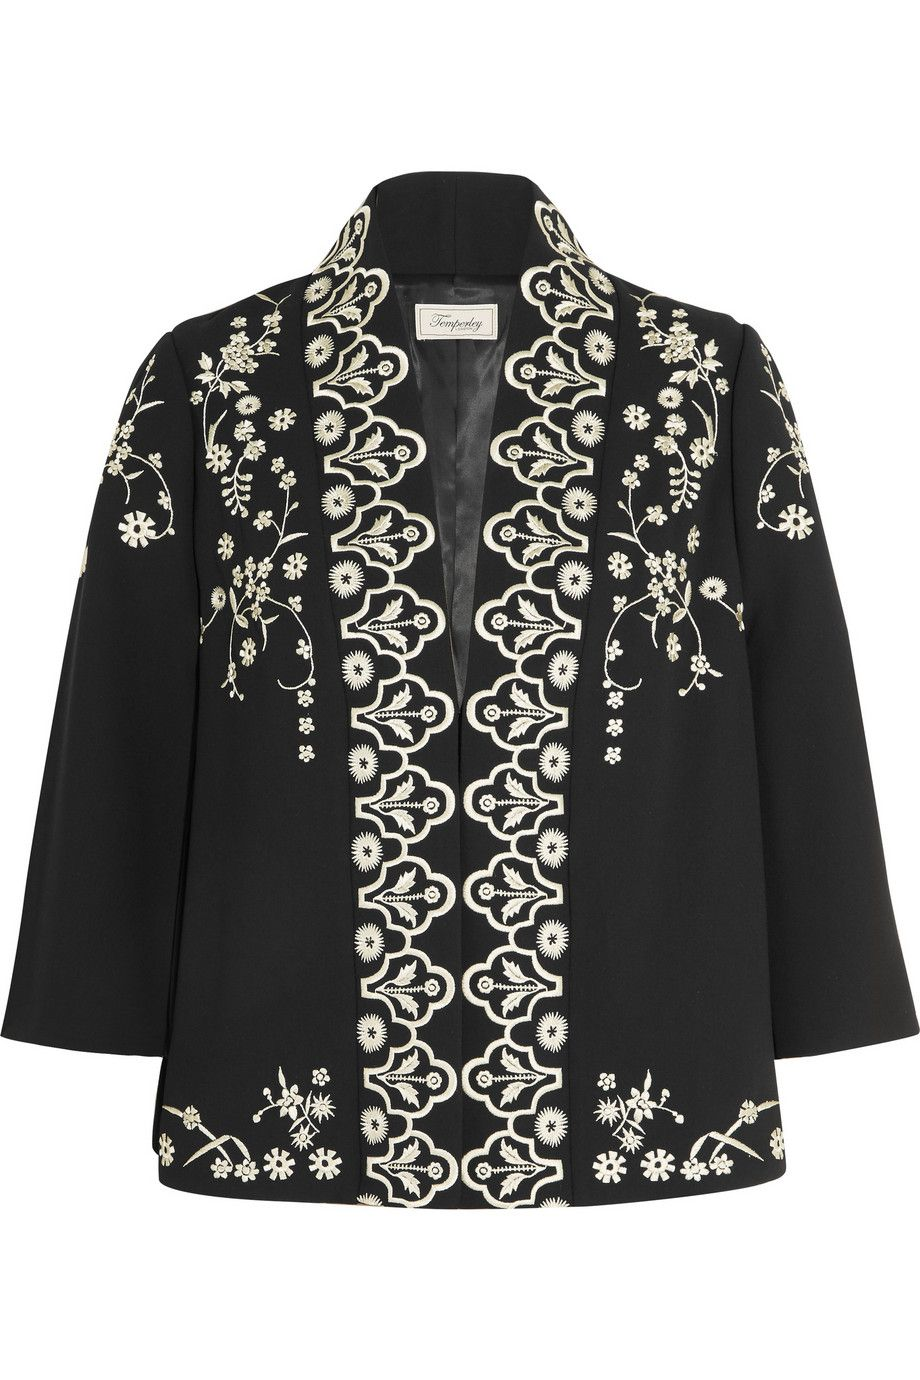 Temperley London | Lettie embroidered crepe jacket | NET-A-PORTER.COM